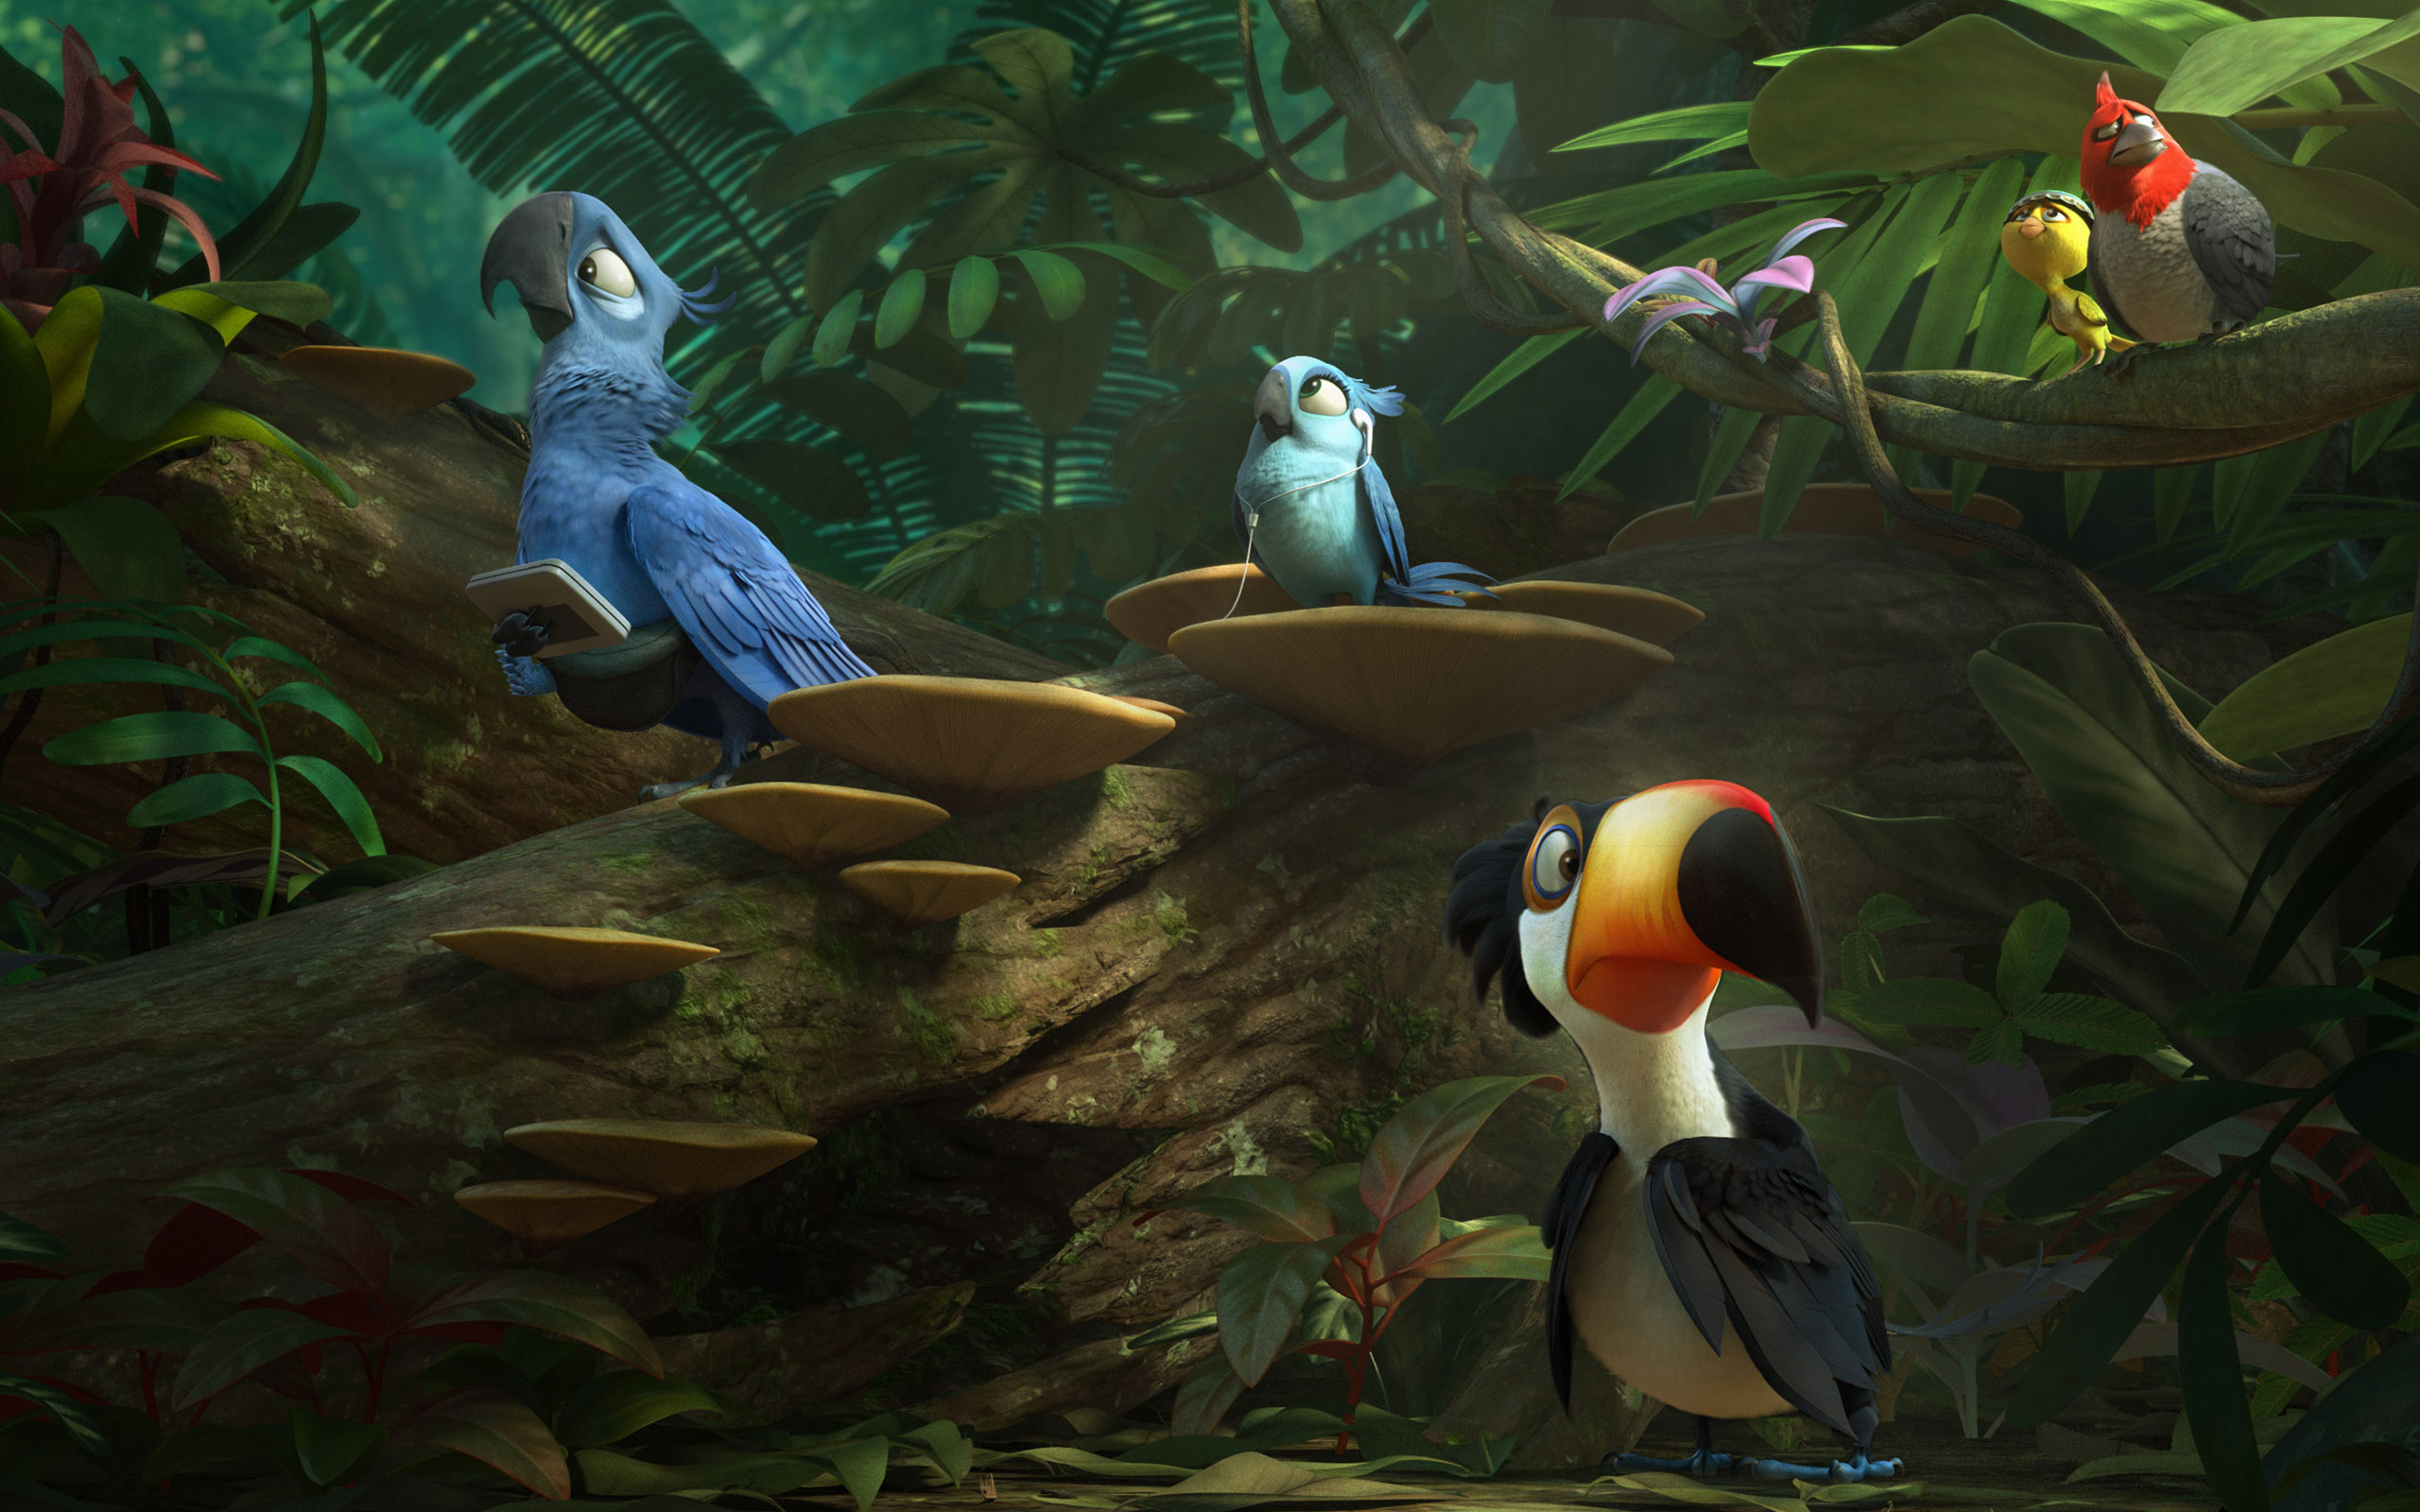 Angry Bird Girl Wallpaper Free Hd Rio 2 Movie Wallpapers Amp Desktop Backgrounds 2014